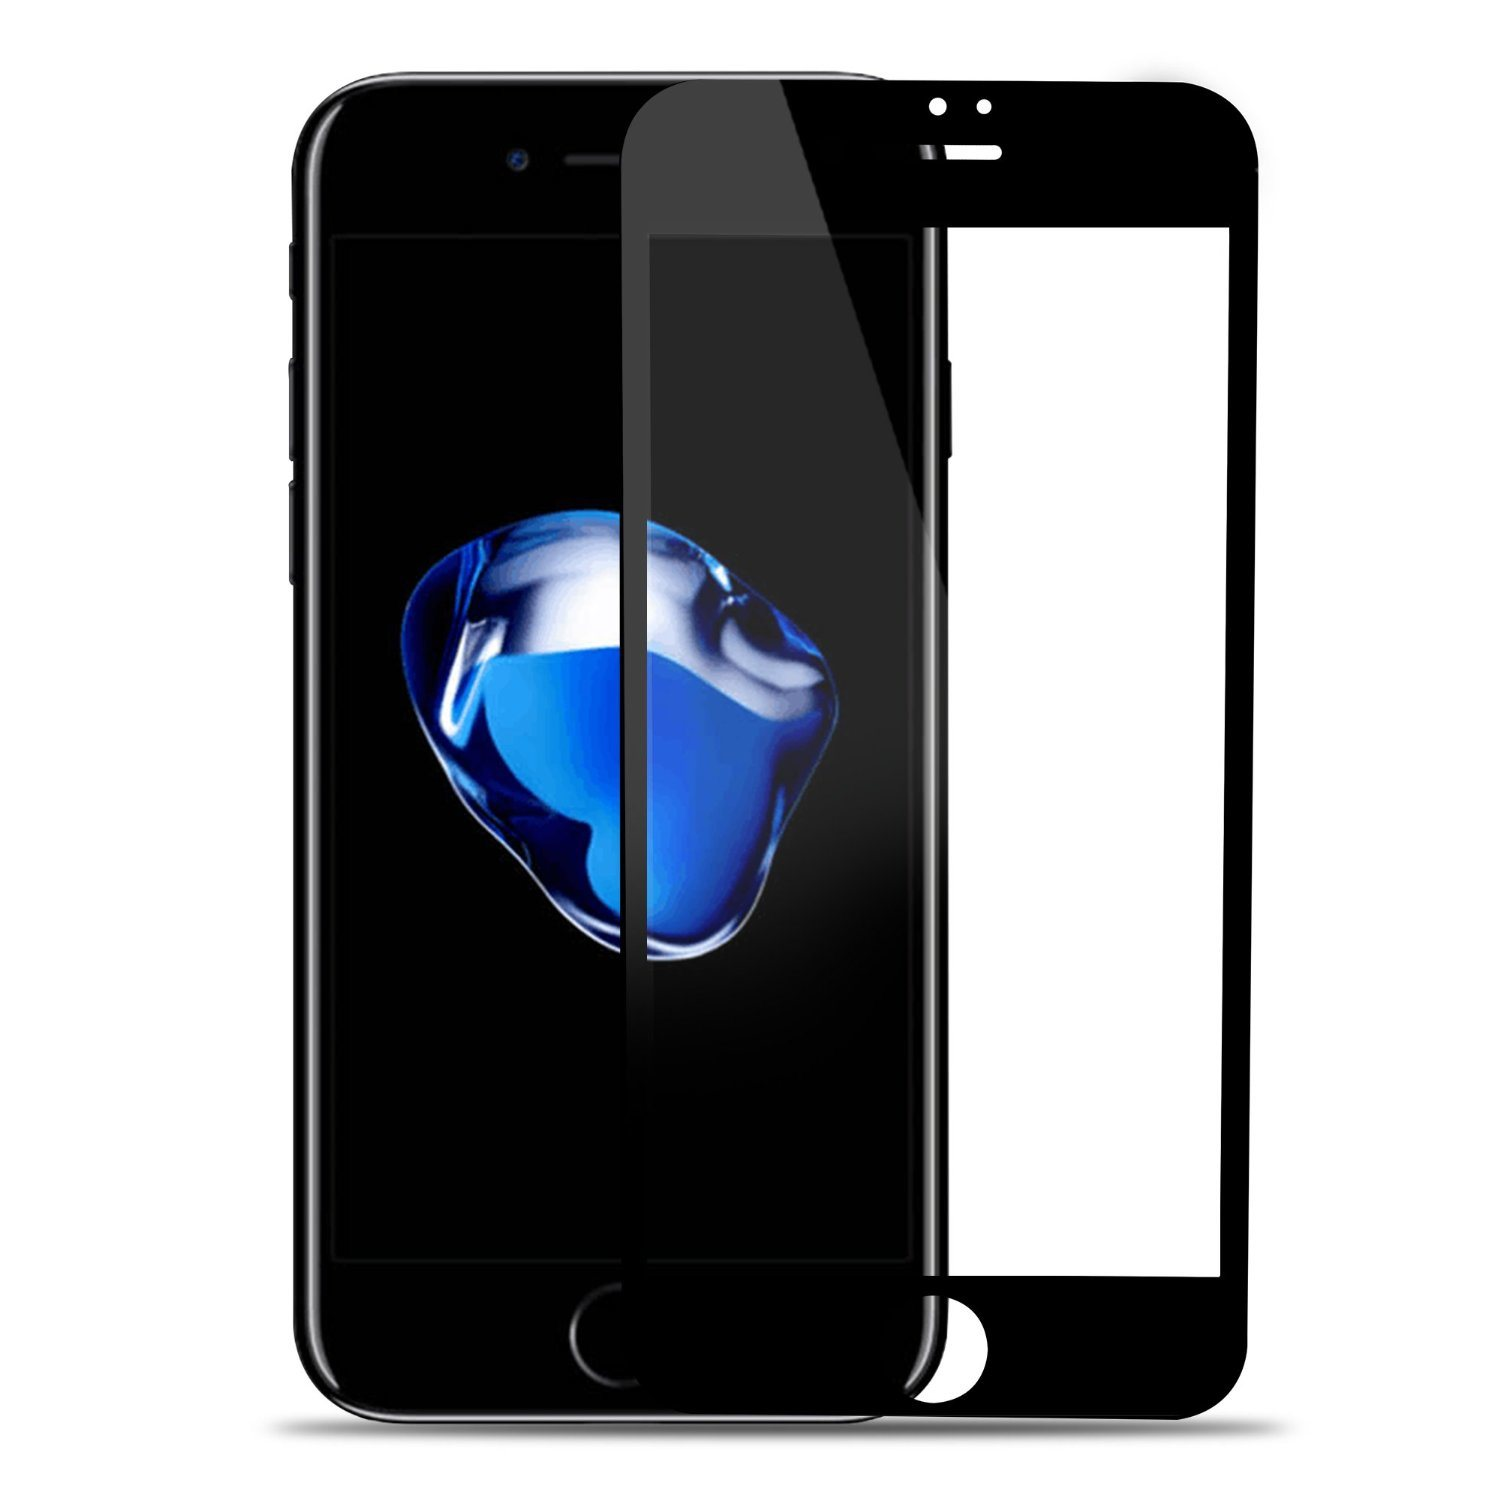 Carbon Fiber 3D Touch Soft Edge Screen Protector for iPhone 7